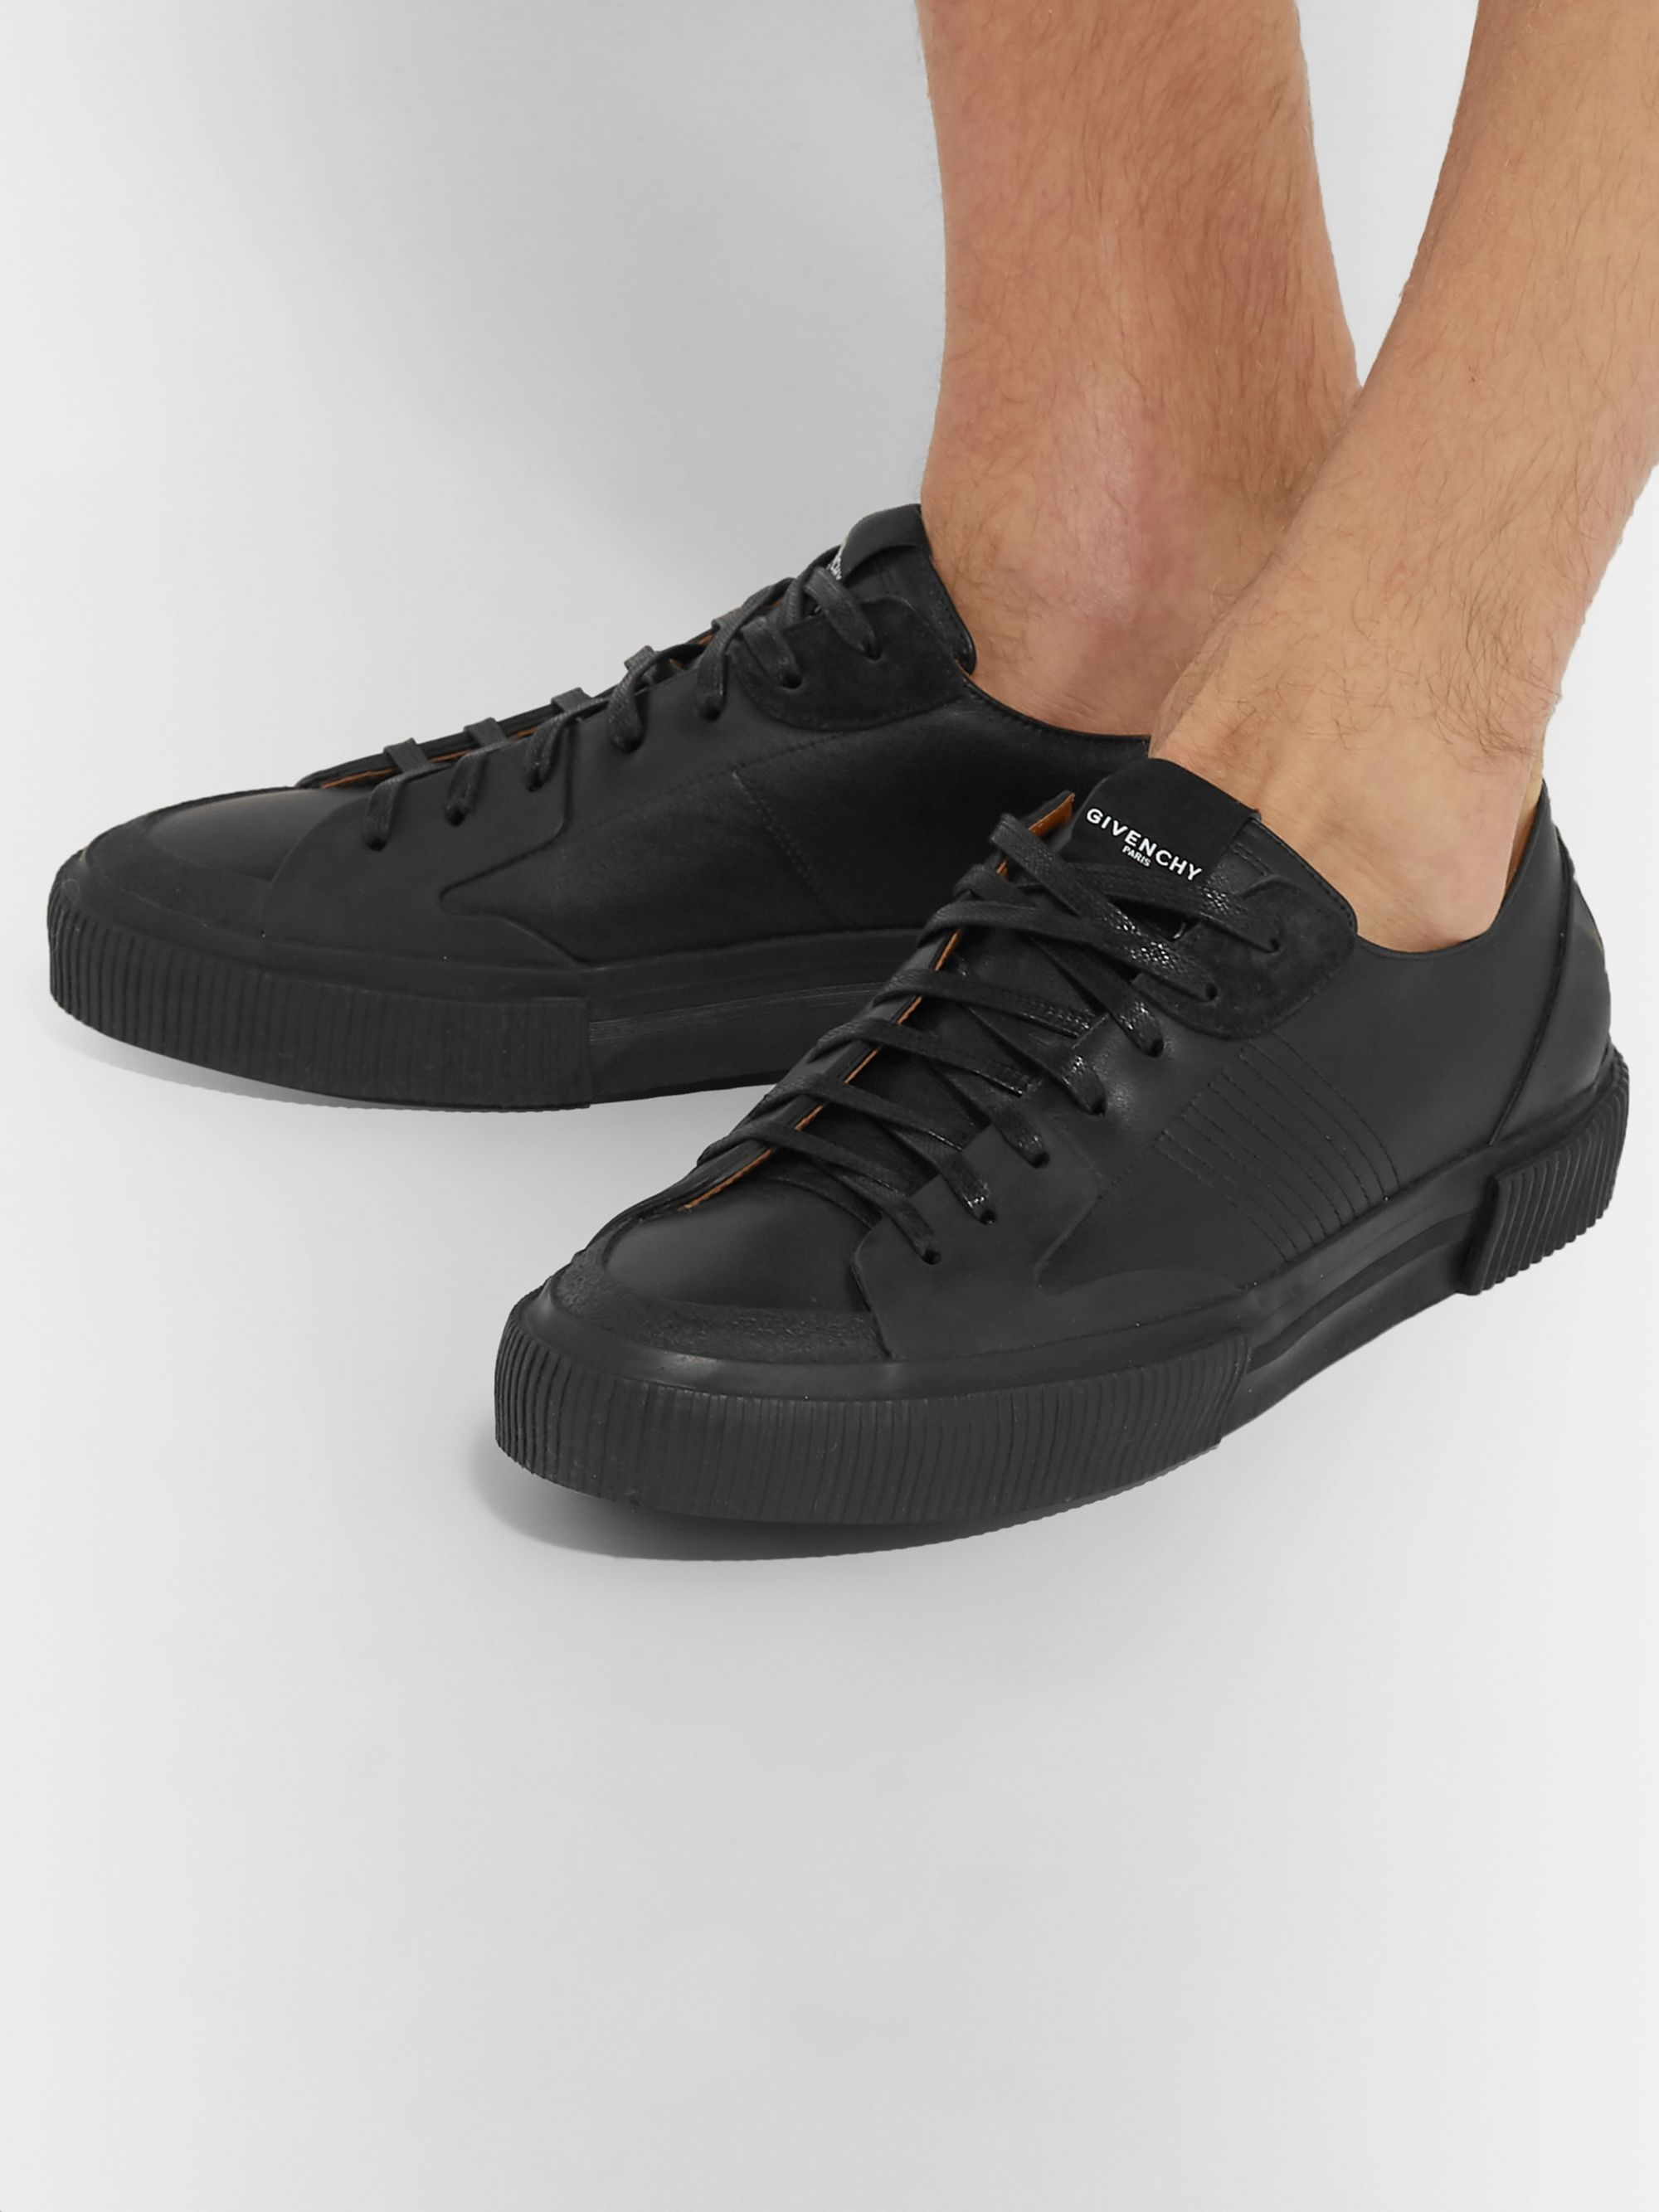 Givenchy Leather and Suede Sneakers